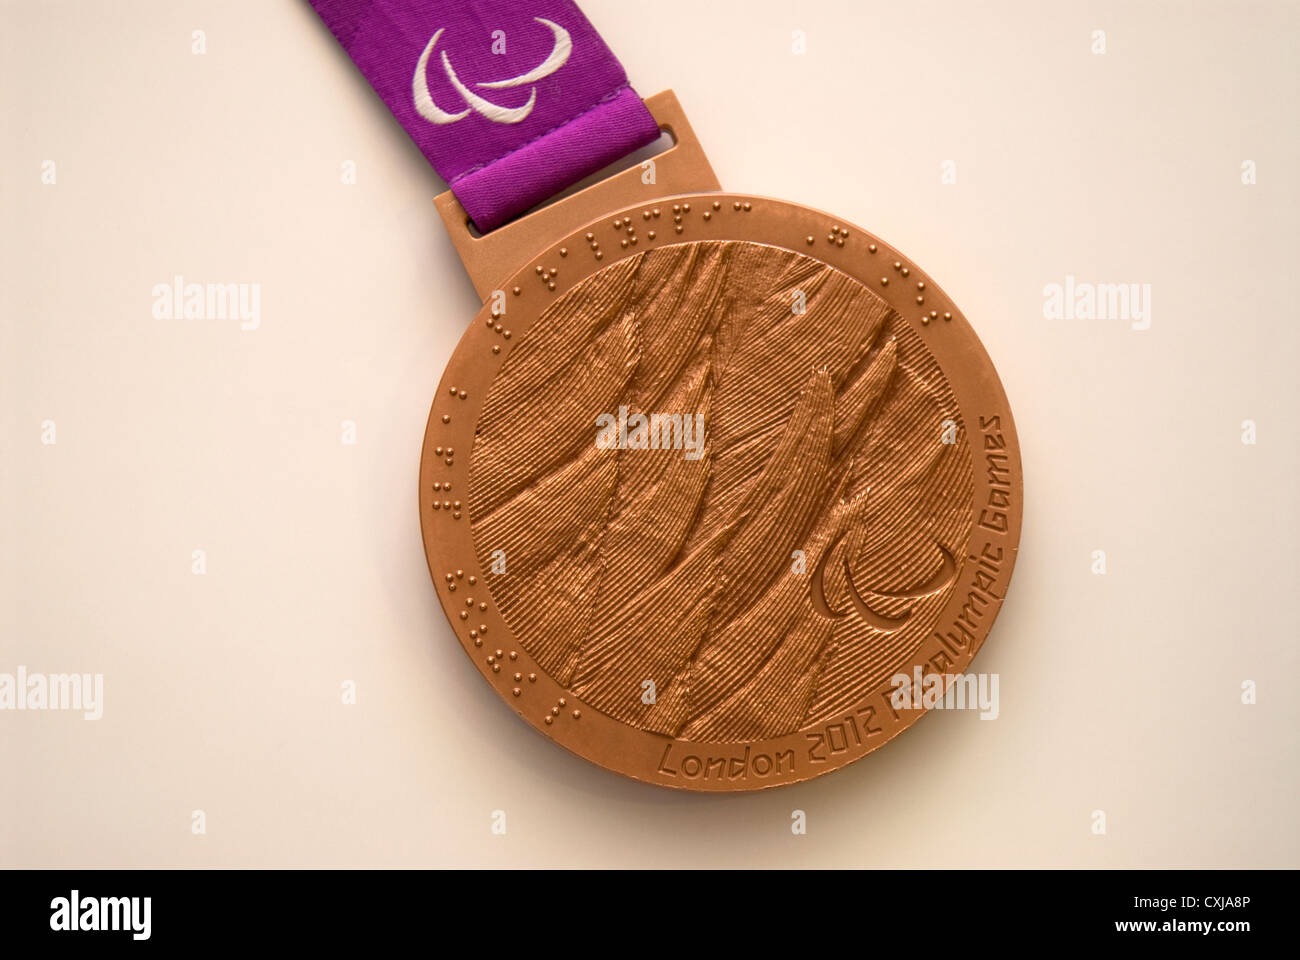 Bronze medal won at London 2012 Paralympic Games by Olivia Breen. - Stock Image